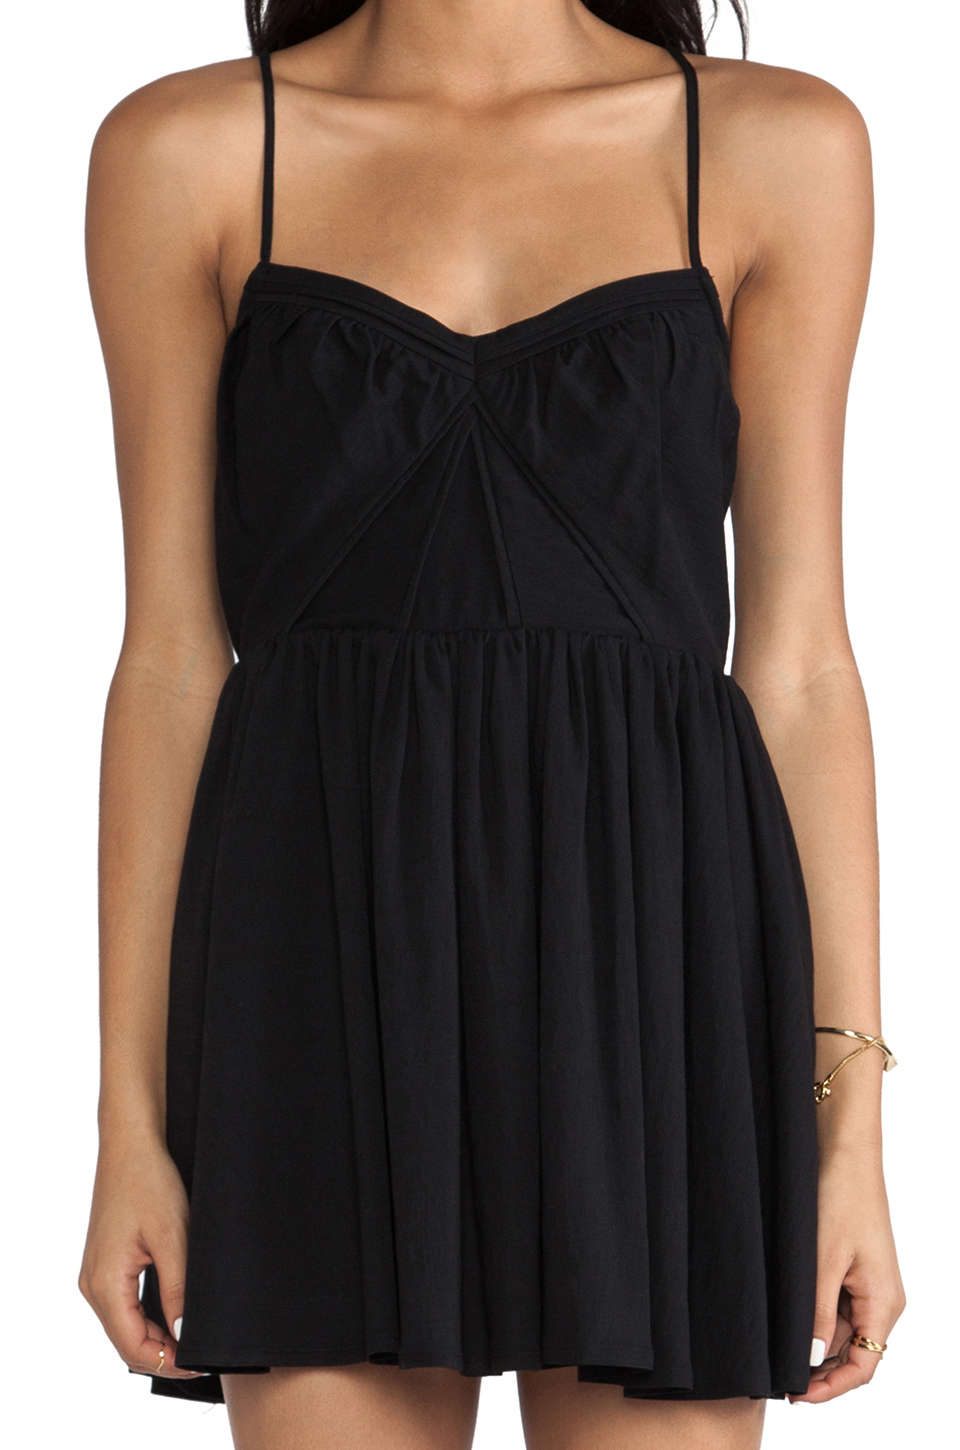 Cameo VCR Dress in Black